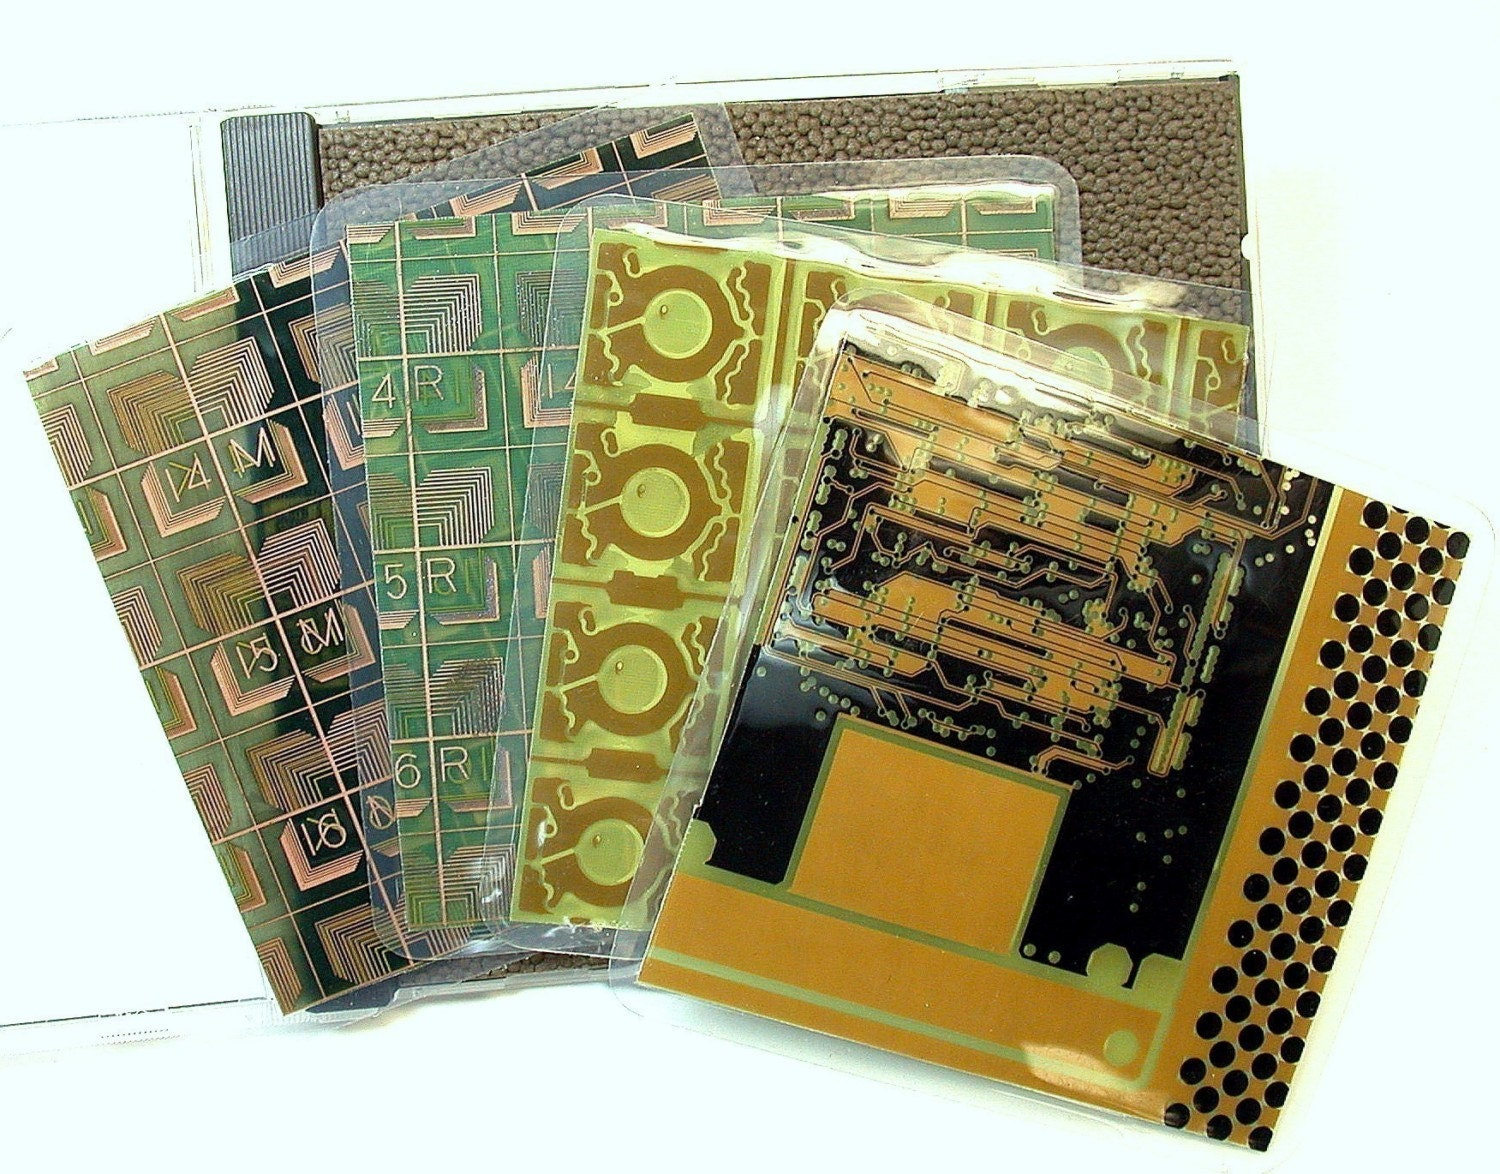 Recycled Circuit Board Light Switch Plate Techie Geekery Wall Auto Vintage Minimagnetic Geek Clipboard Coasters Pkg 4